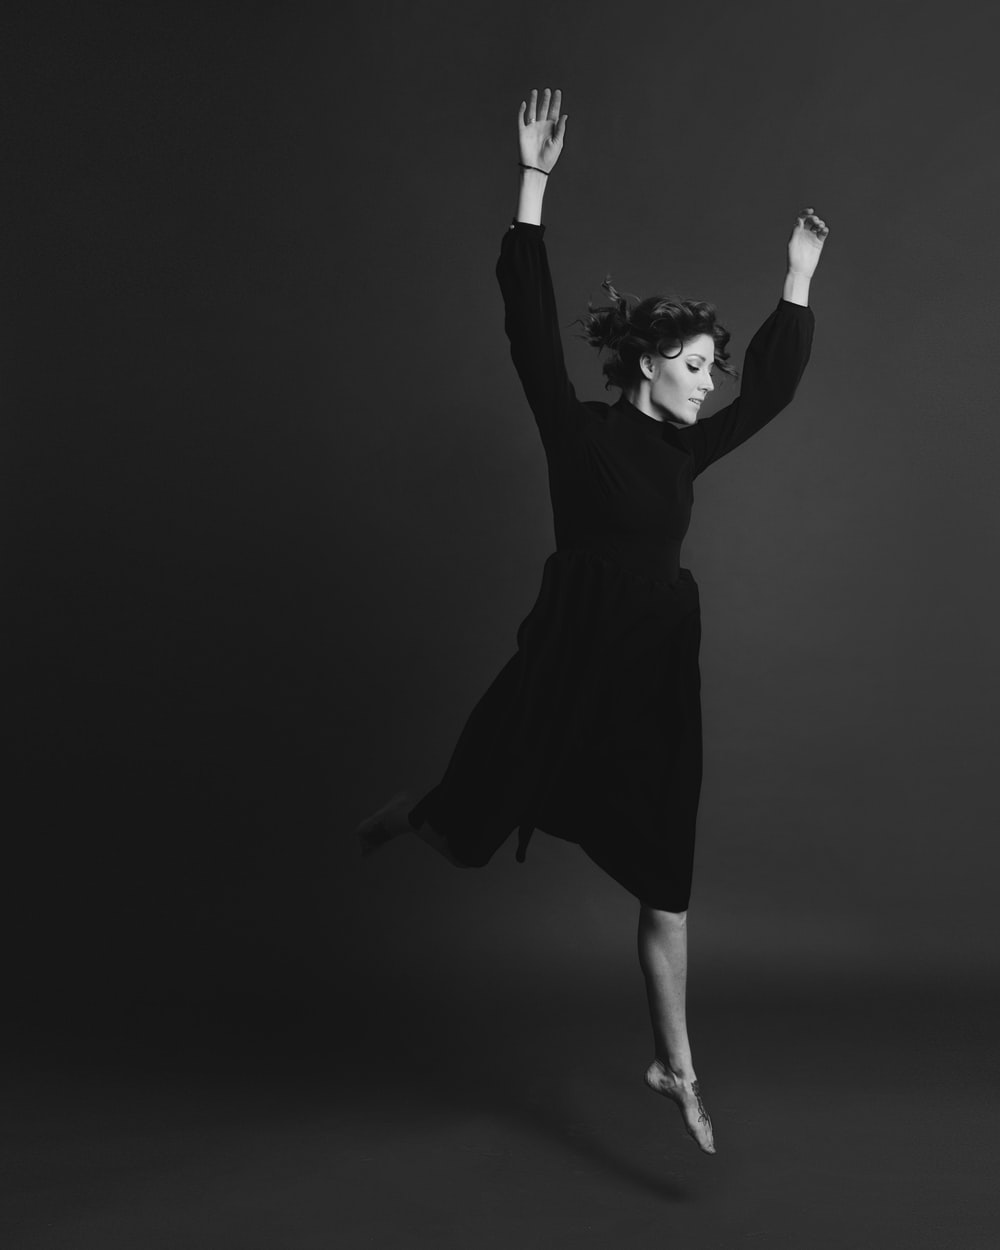 grayscale photography of woman wearing long-sleeved dress